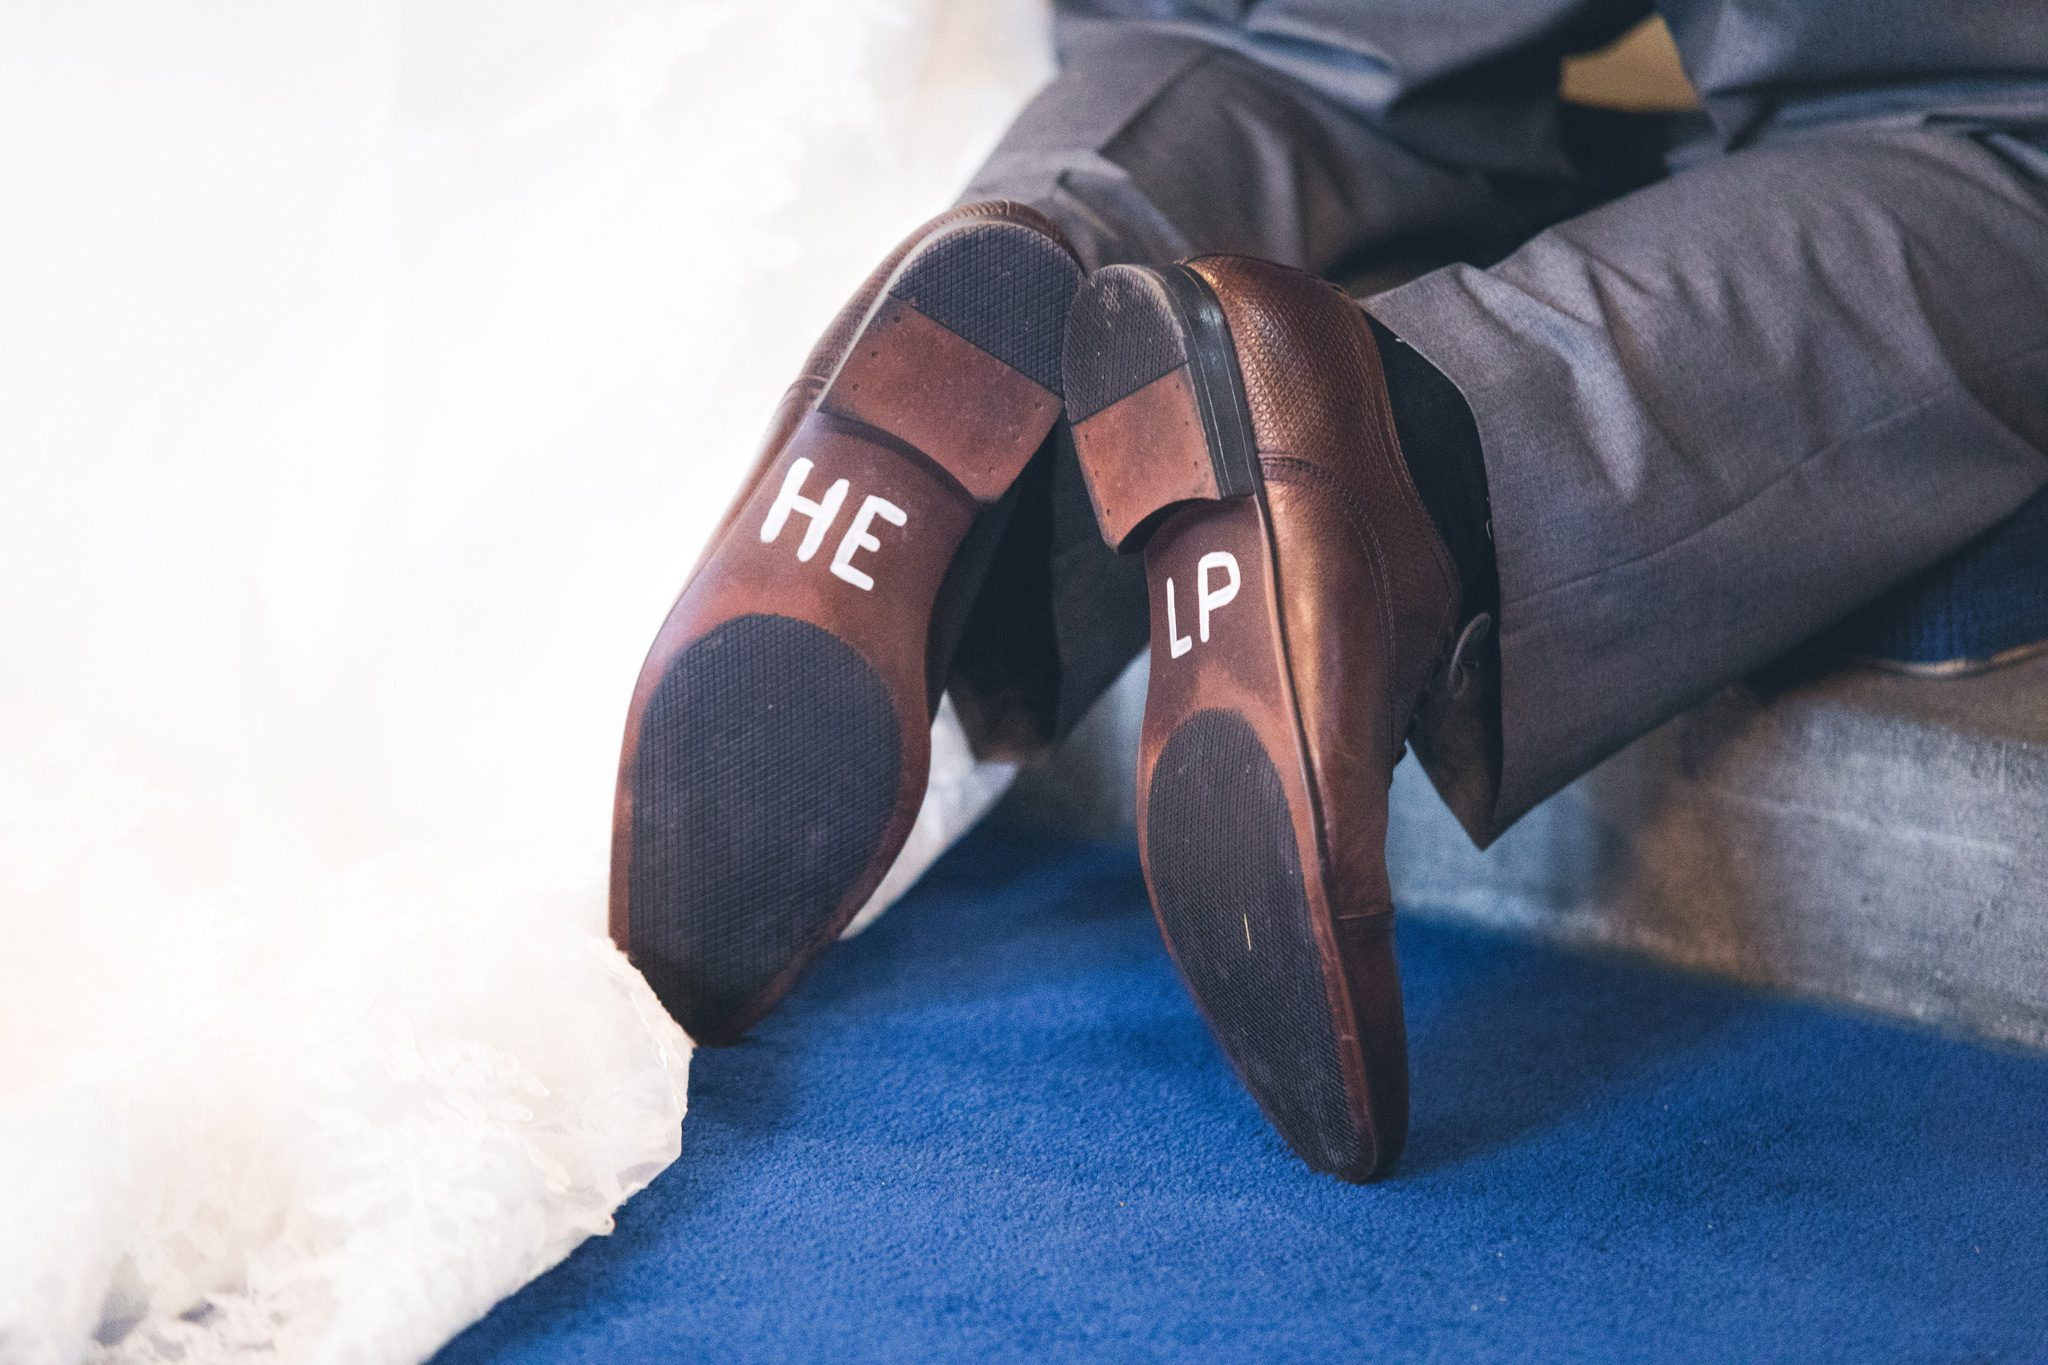 Grooms Shoes in church